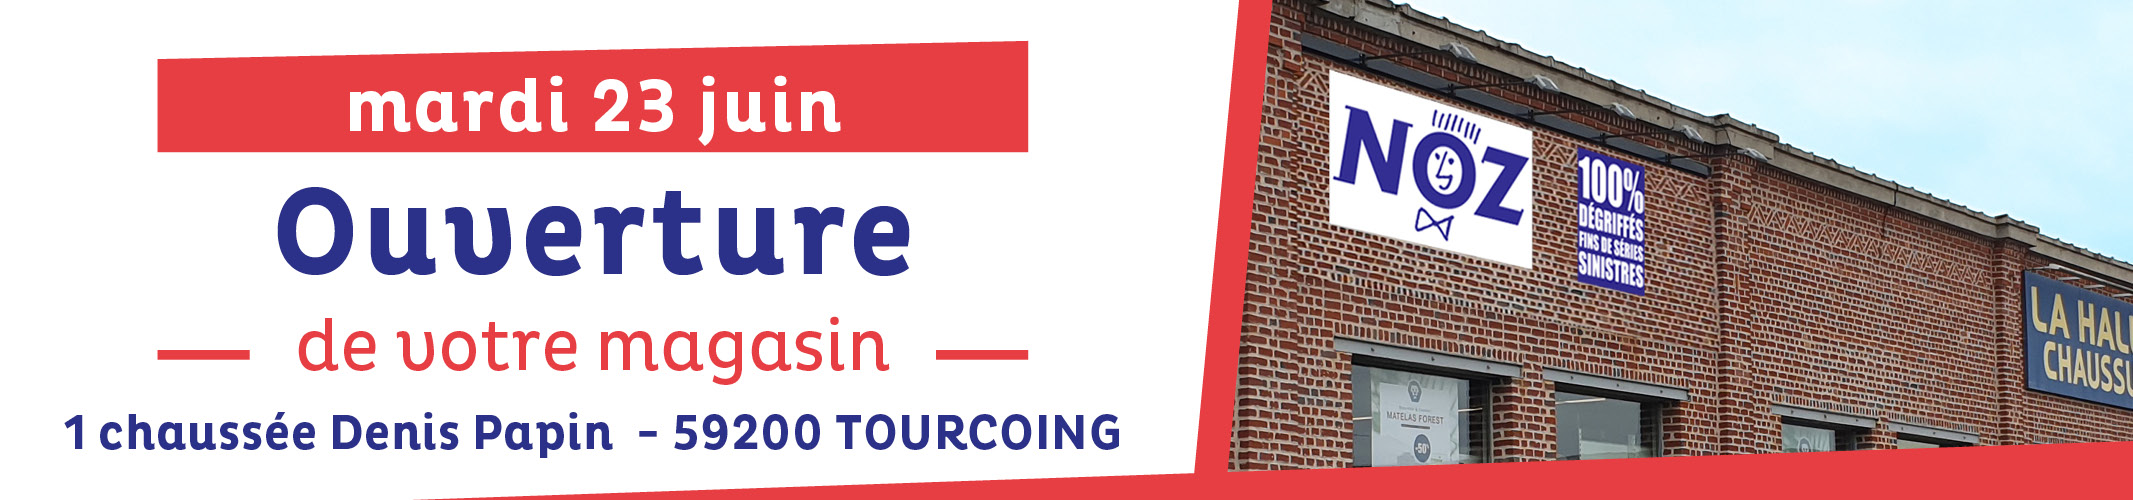 Ouverture Tourcoing